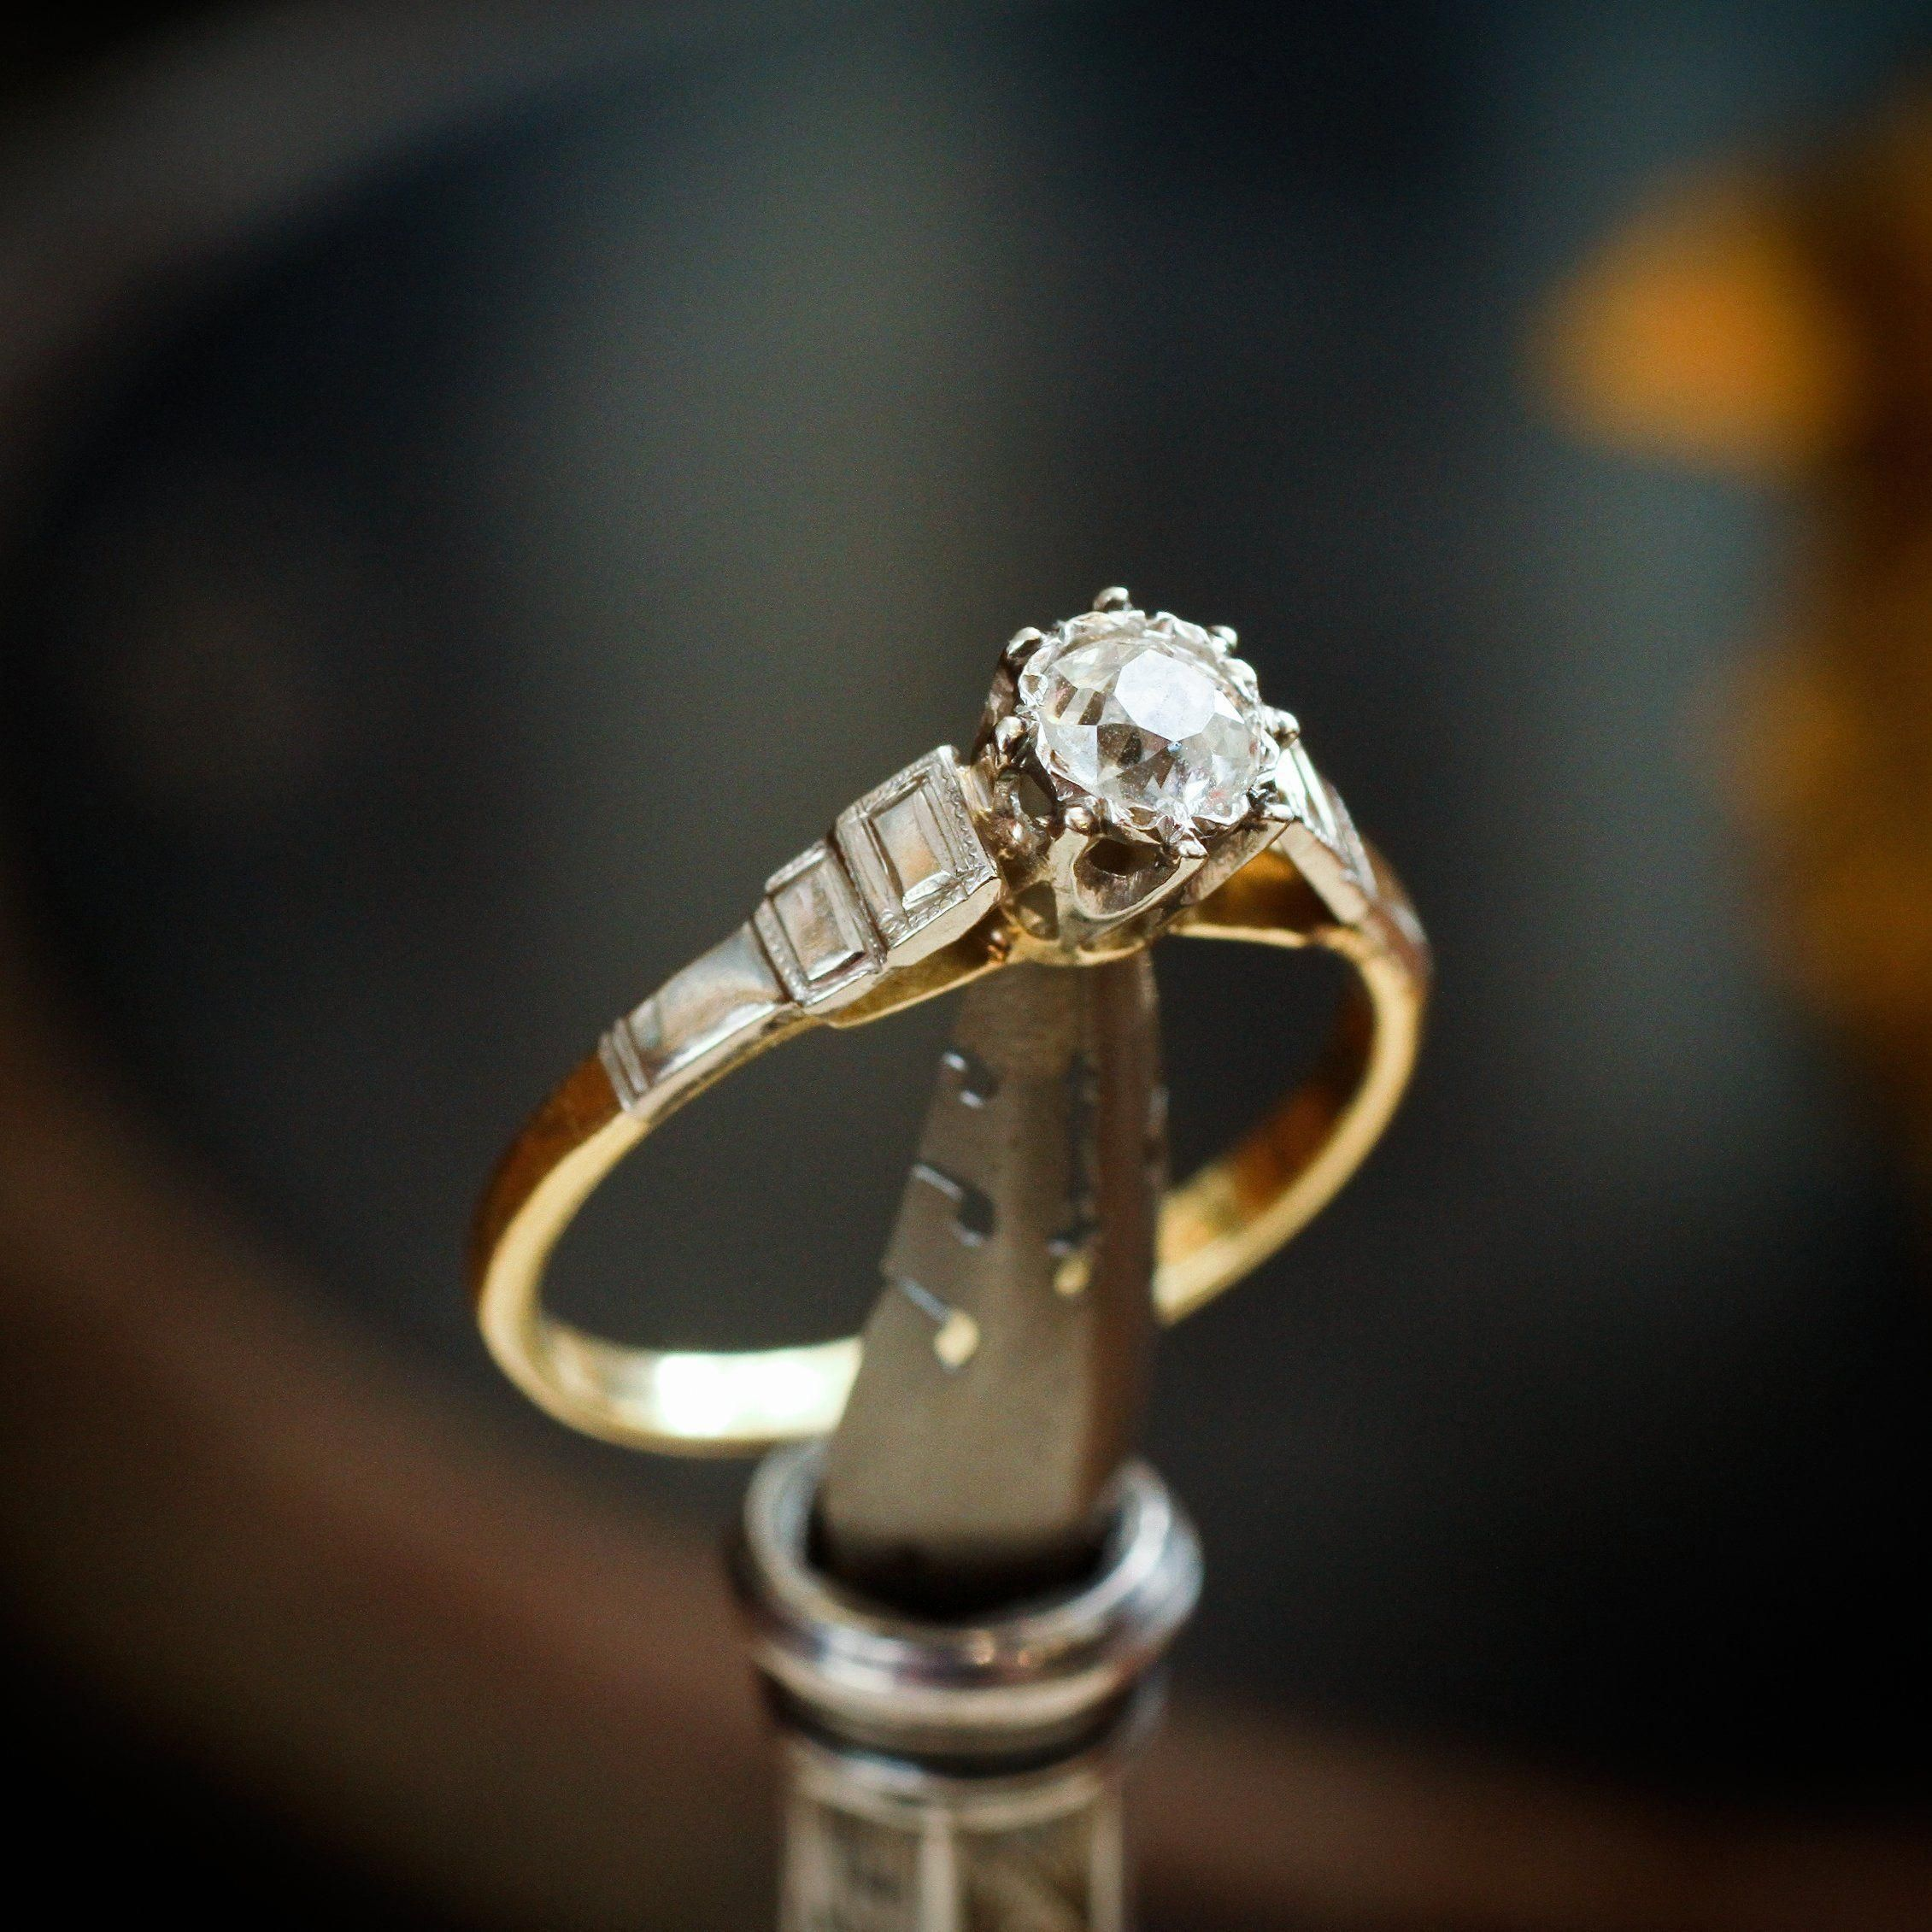 Solitaire Engagement Rings Really Are Stunning Pic 7738571773 Solita Antique Diamond Engagement Rings Diamond Solitaire Engagement Ring Antique Wedding Rings